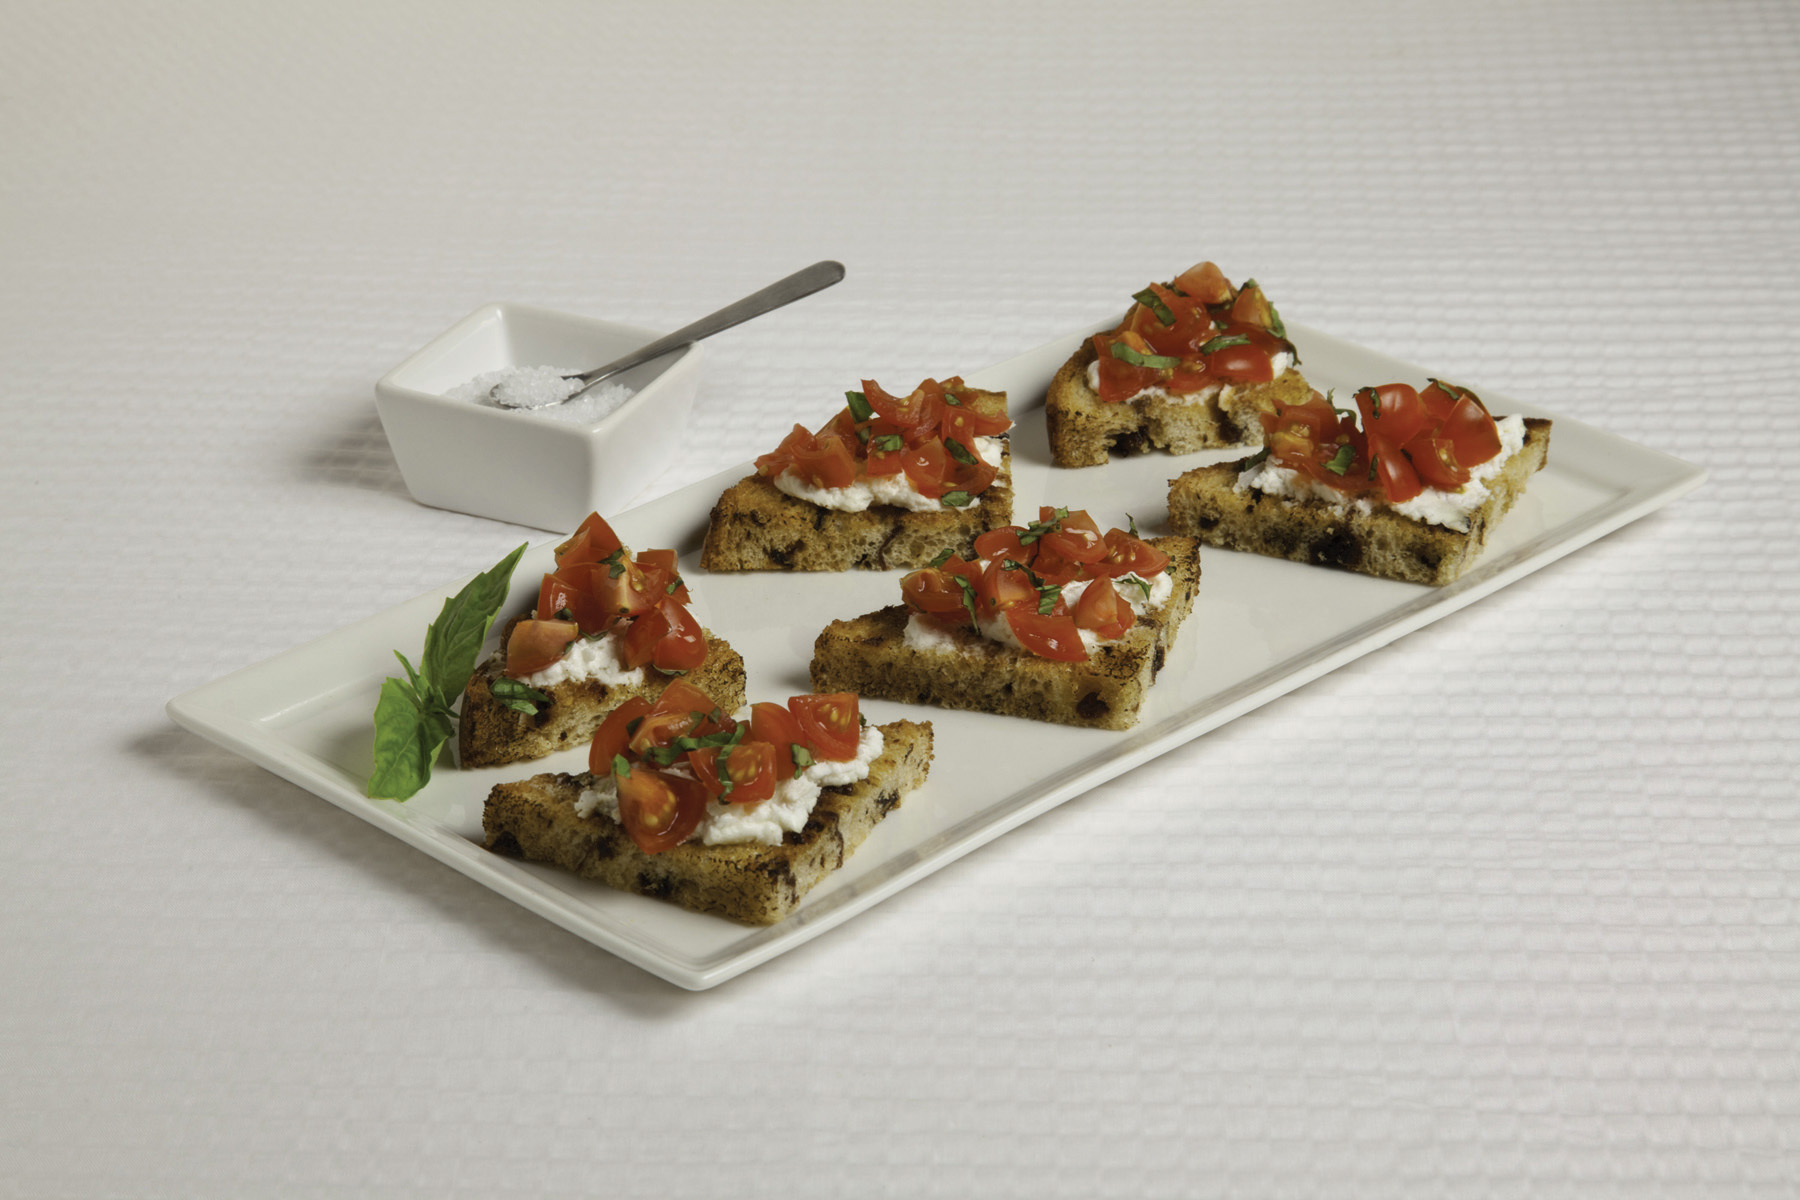 Raisin Bread Crostini with Tomato-Basil Salsa